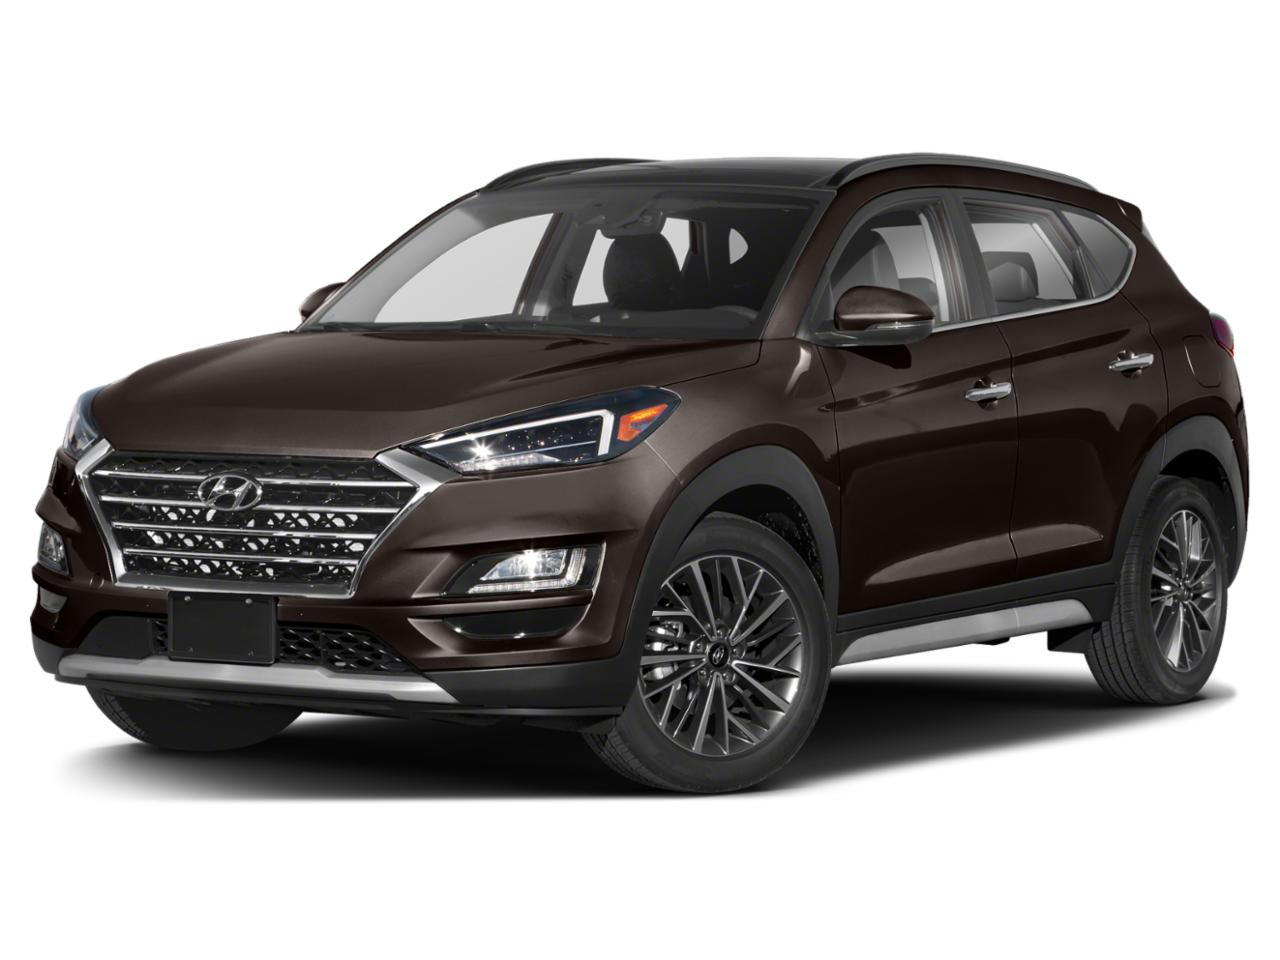 2020 Hyundai Tucson Vehicle Photo in Peoria, IL 61615